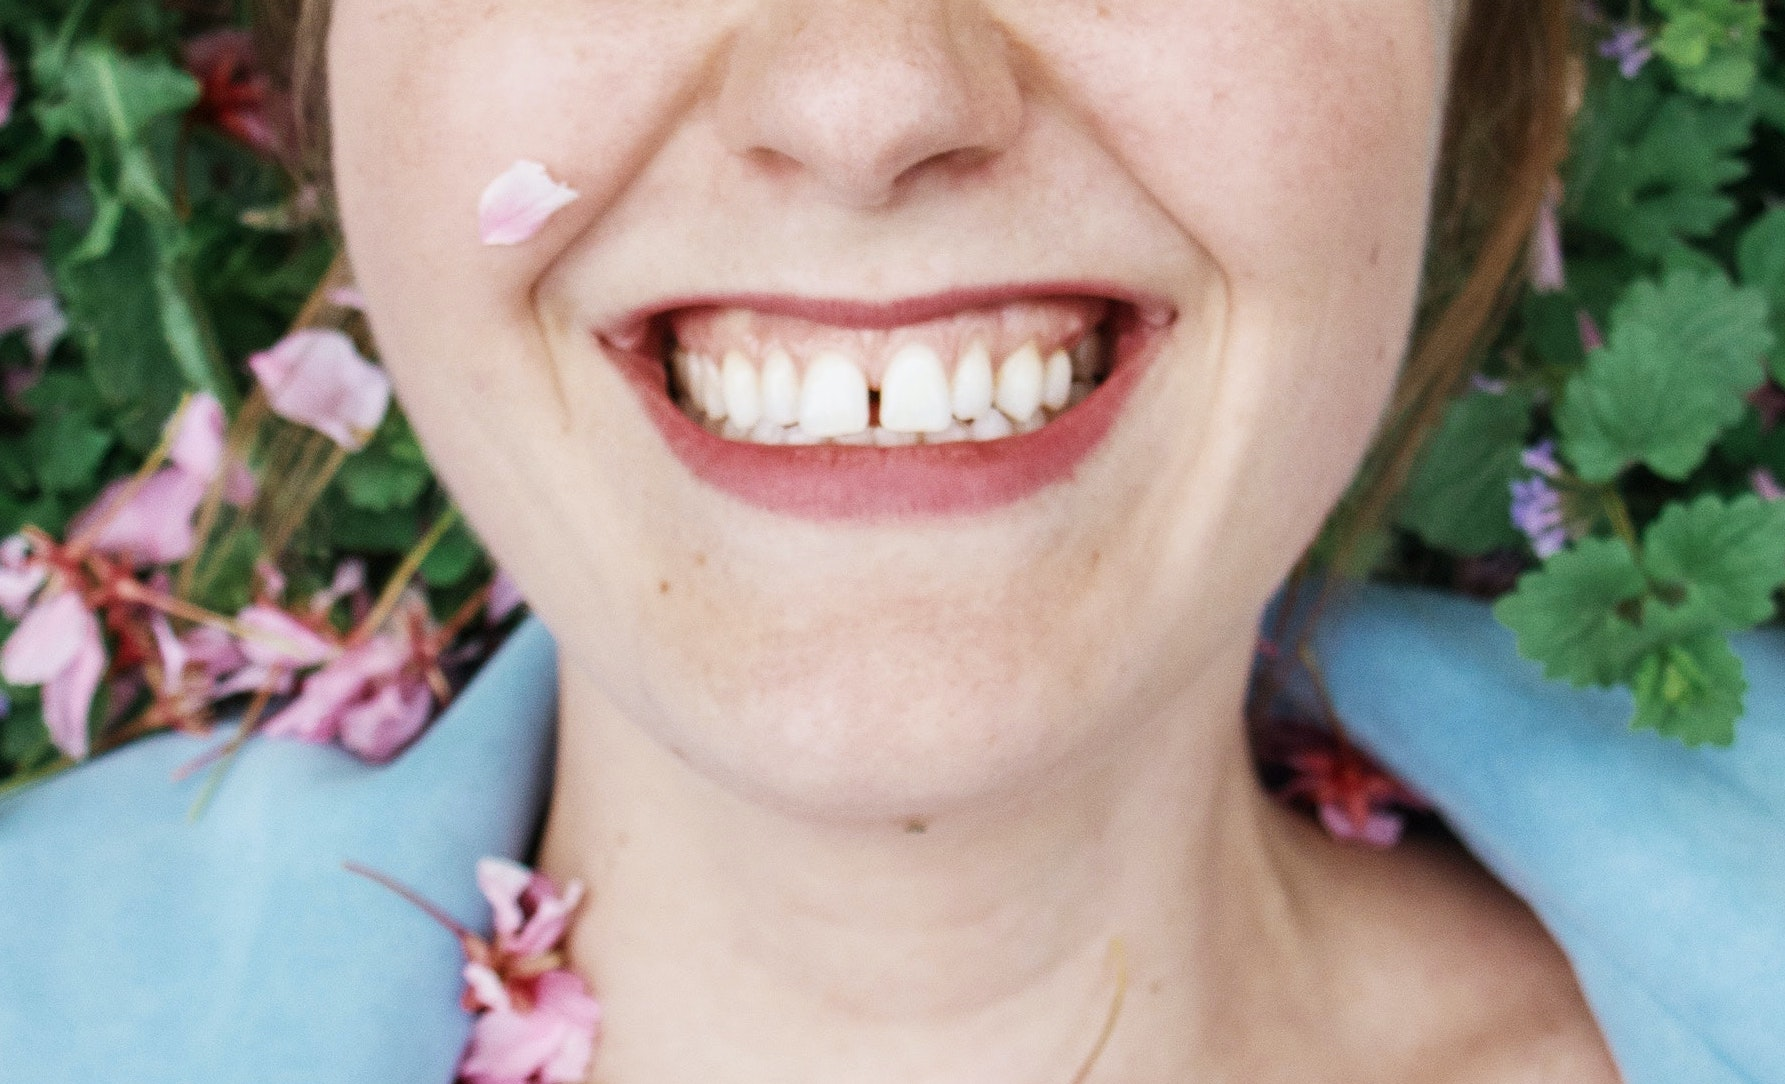 Woman with gapped front teeth using invisalign to close gaps